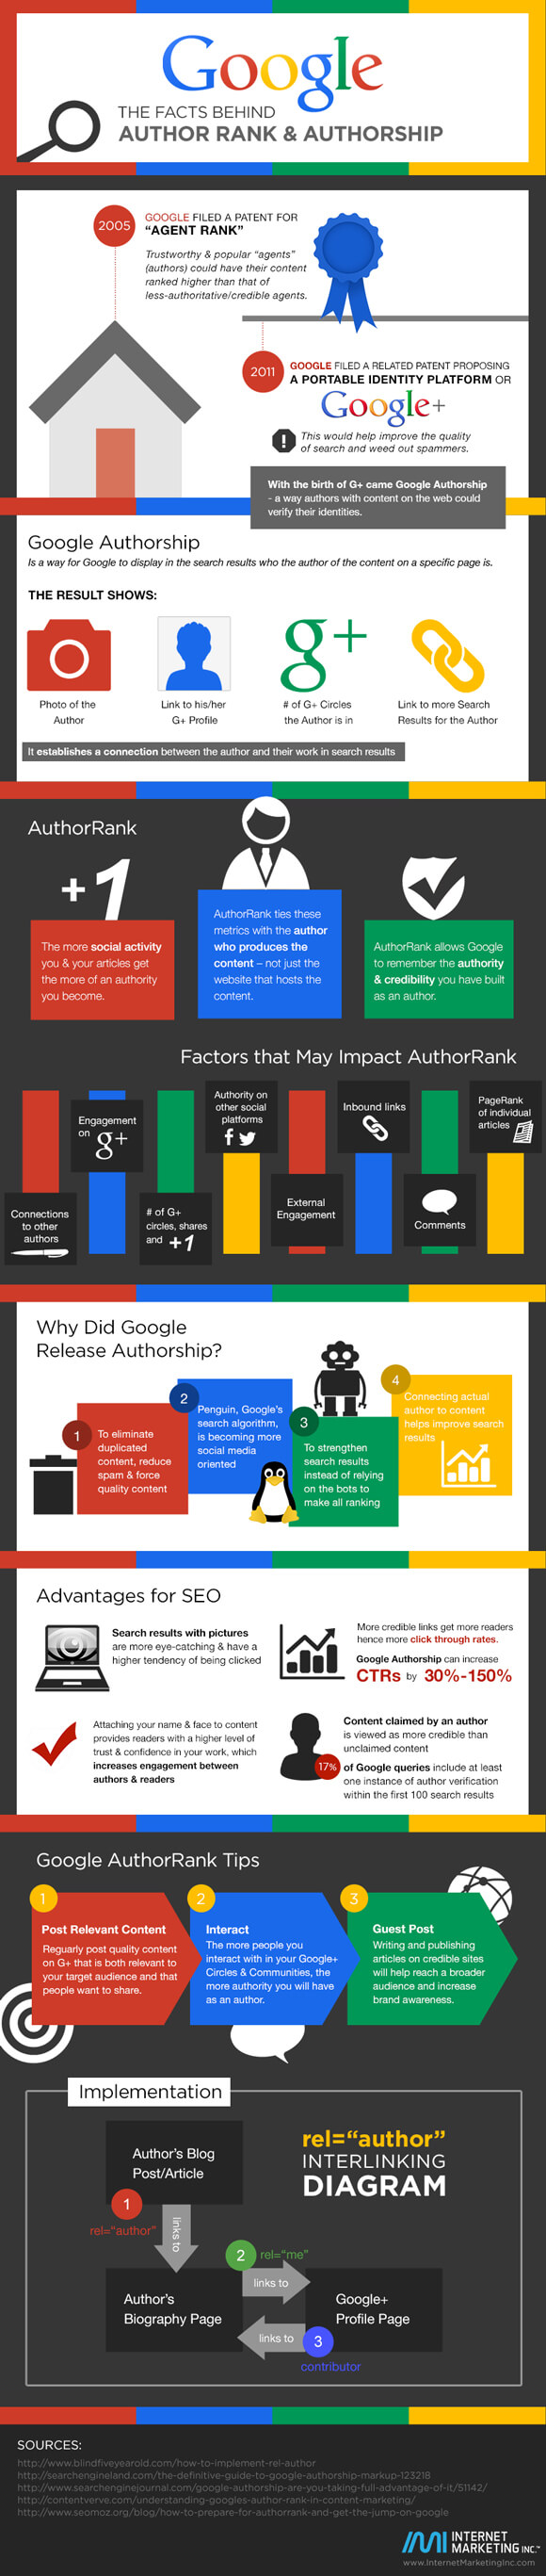 google_authorrank_komplett